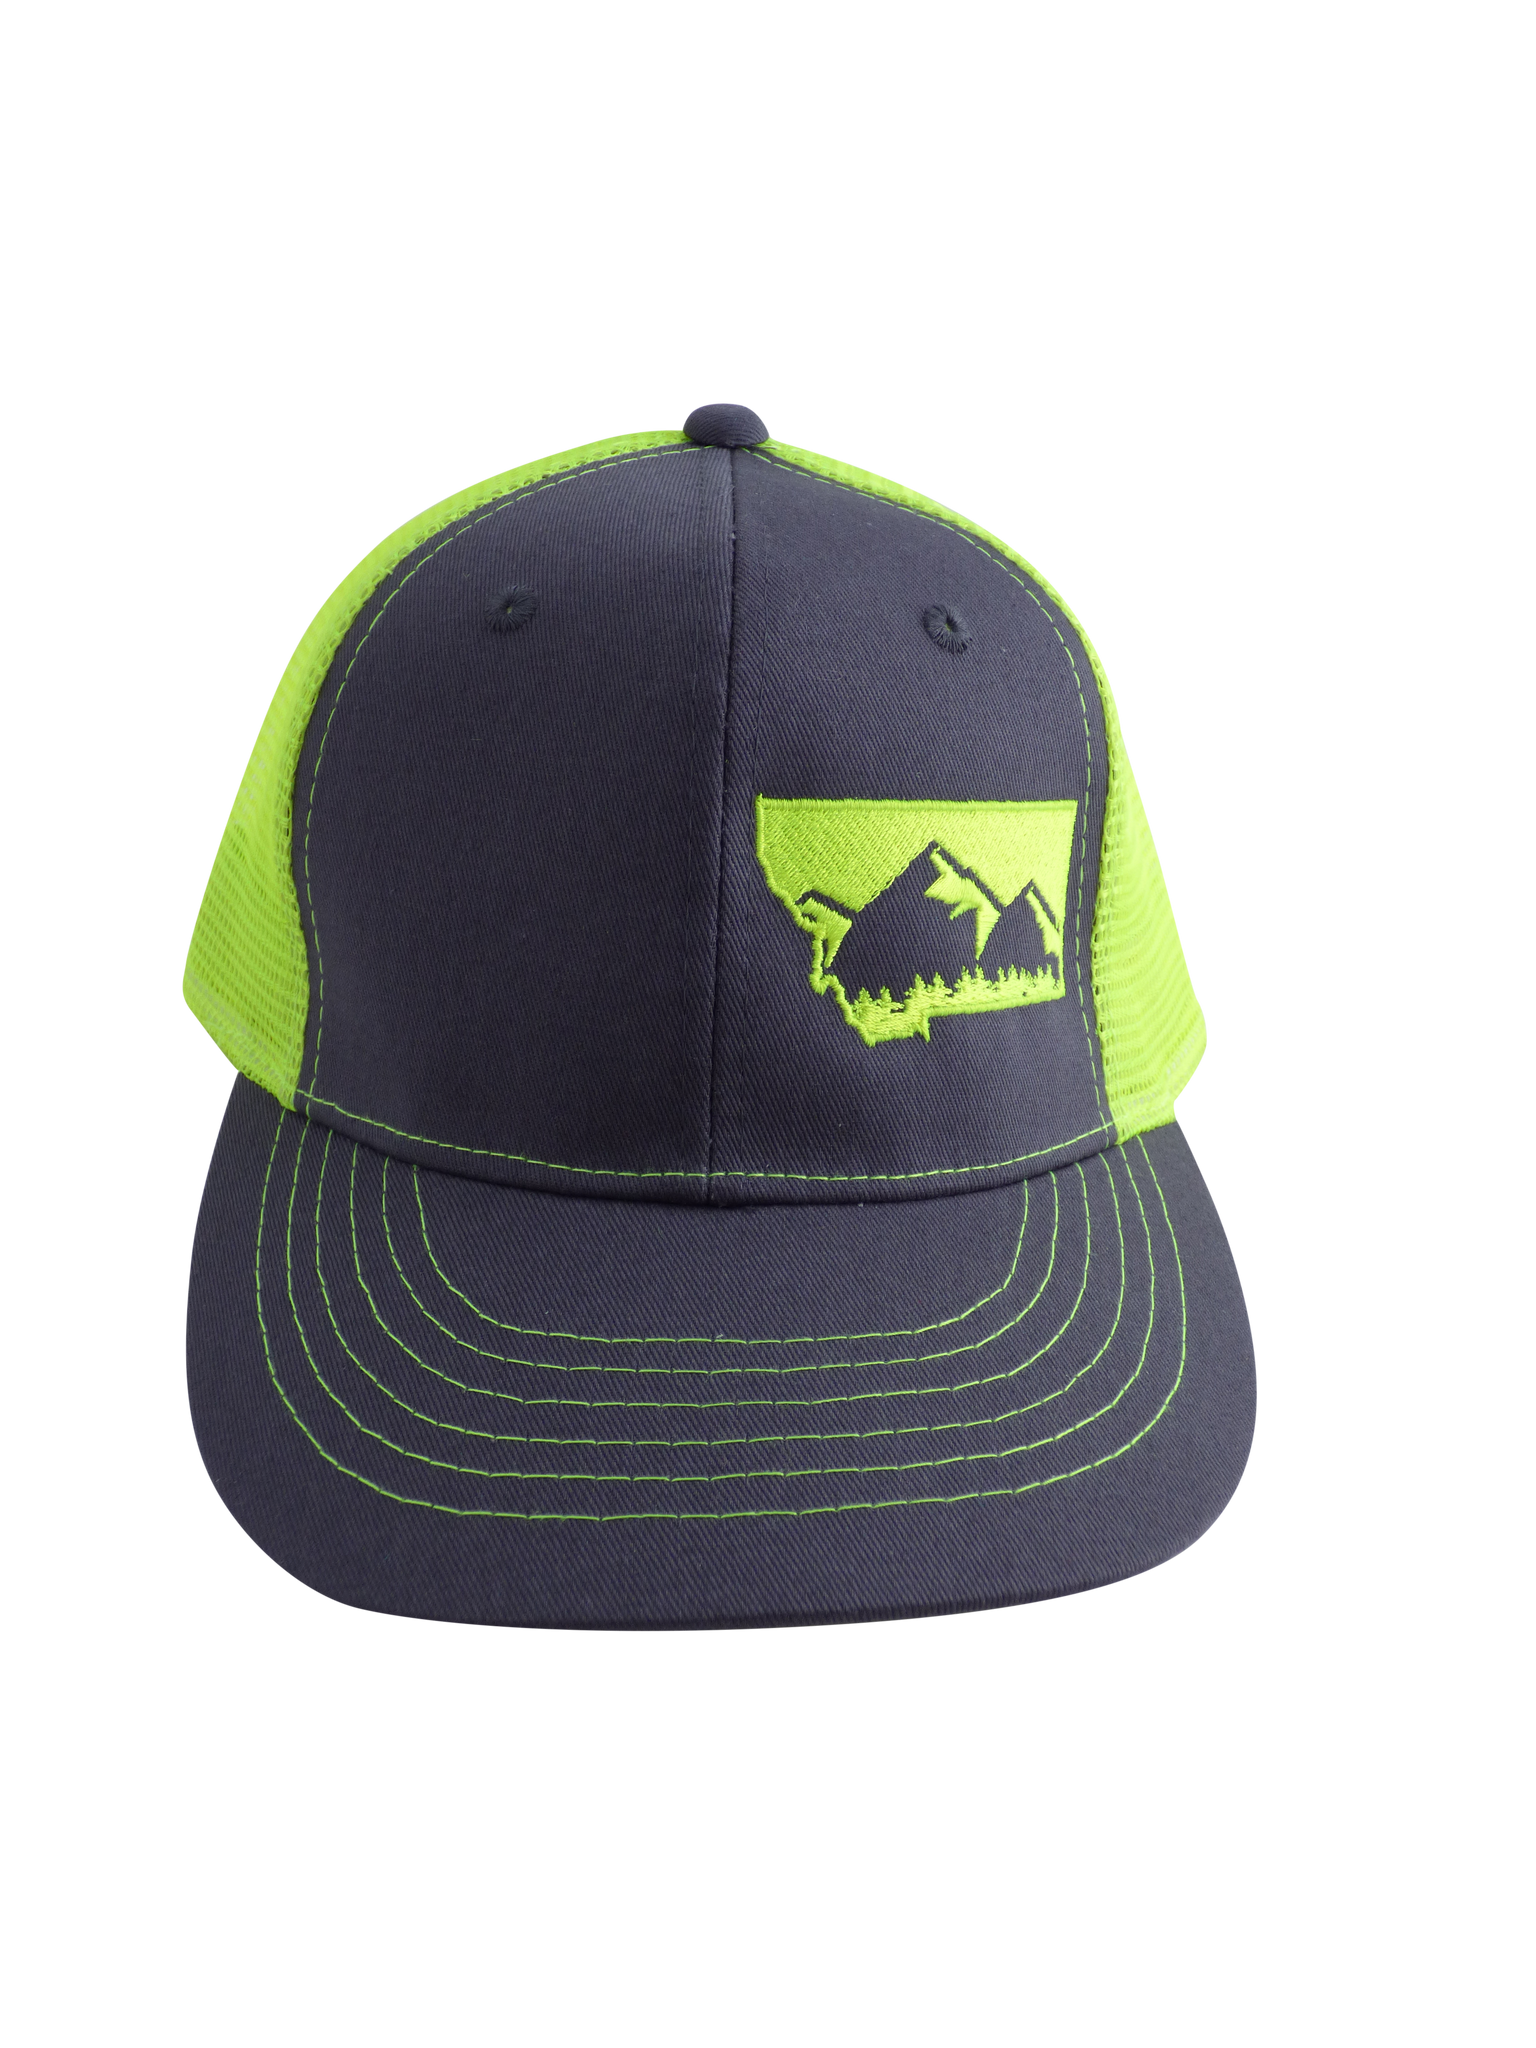 Neon Yellow and Charcoal Mountain Hat